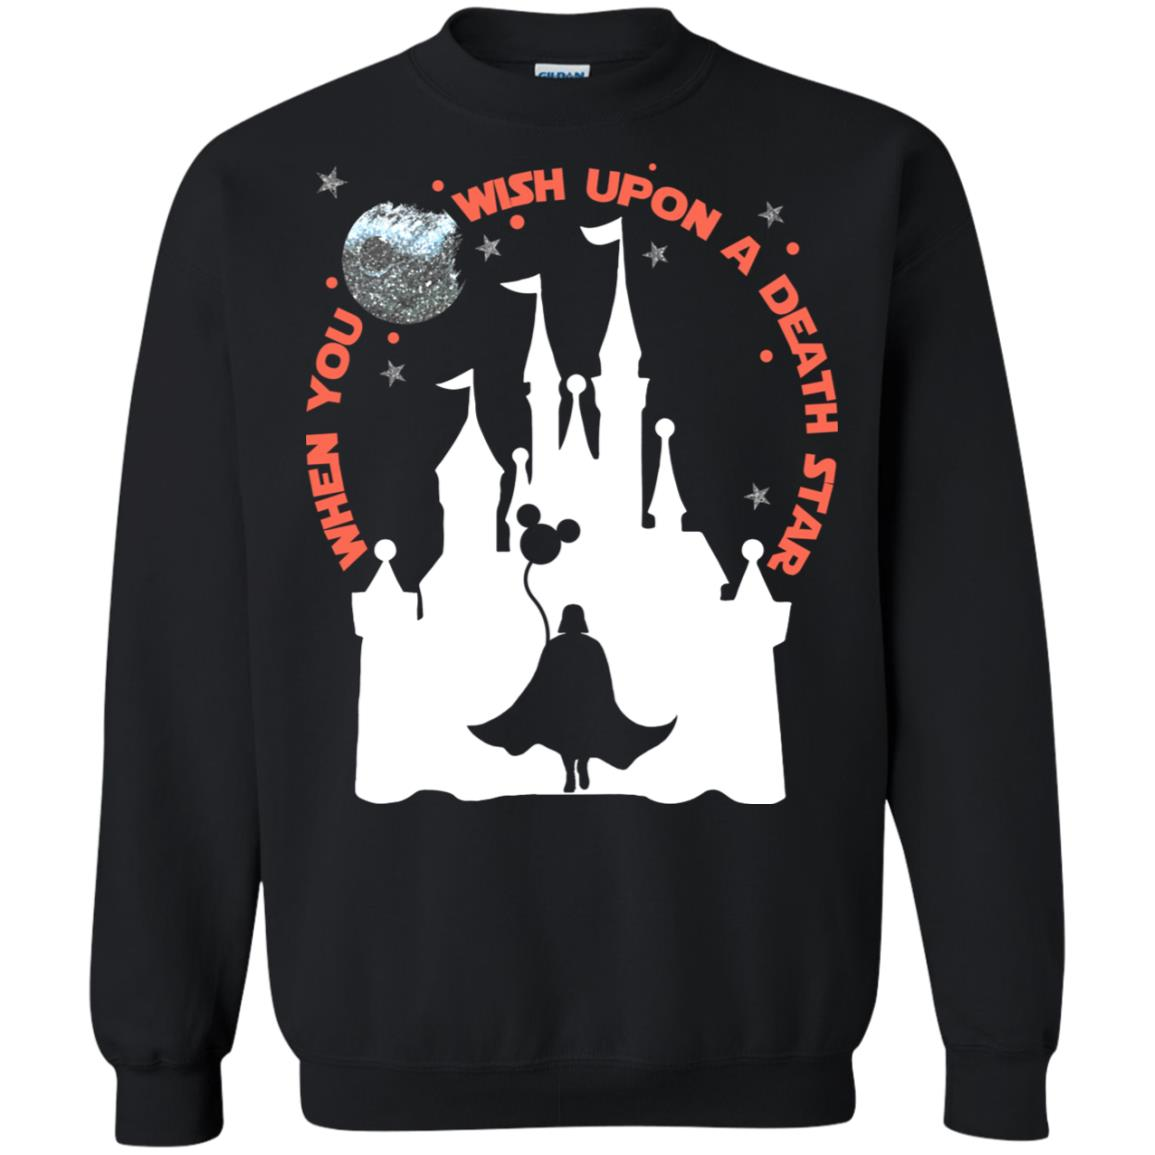 When you wish upon a death star